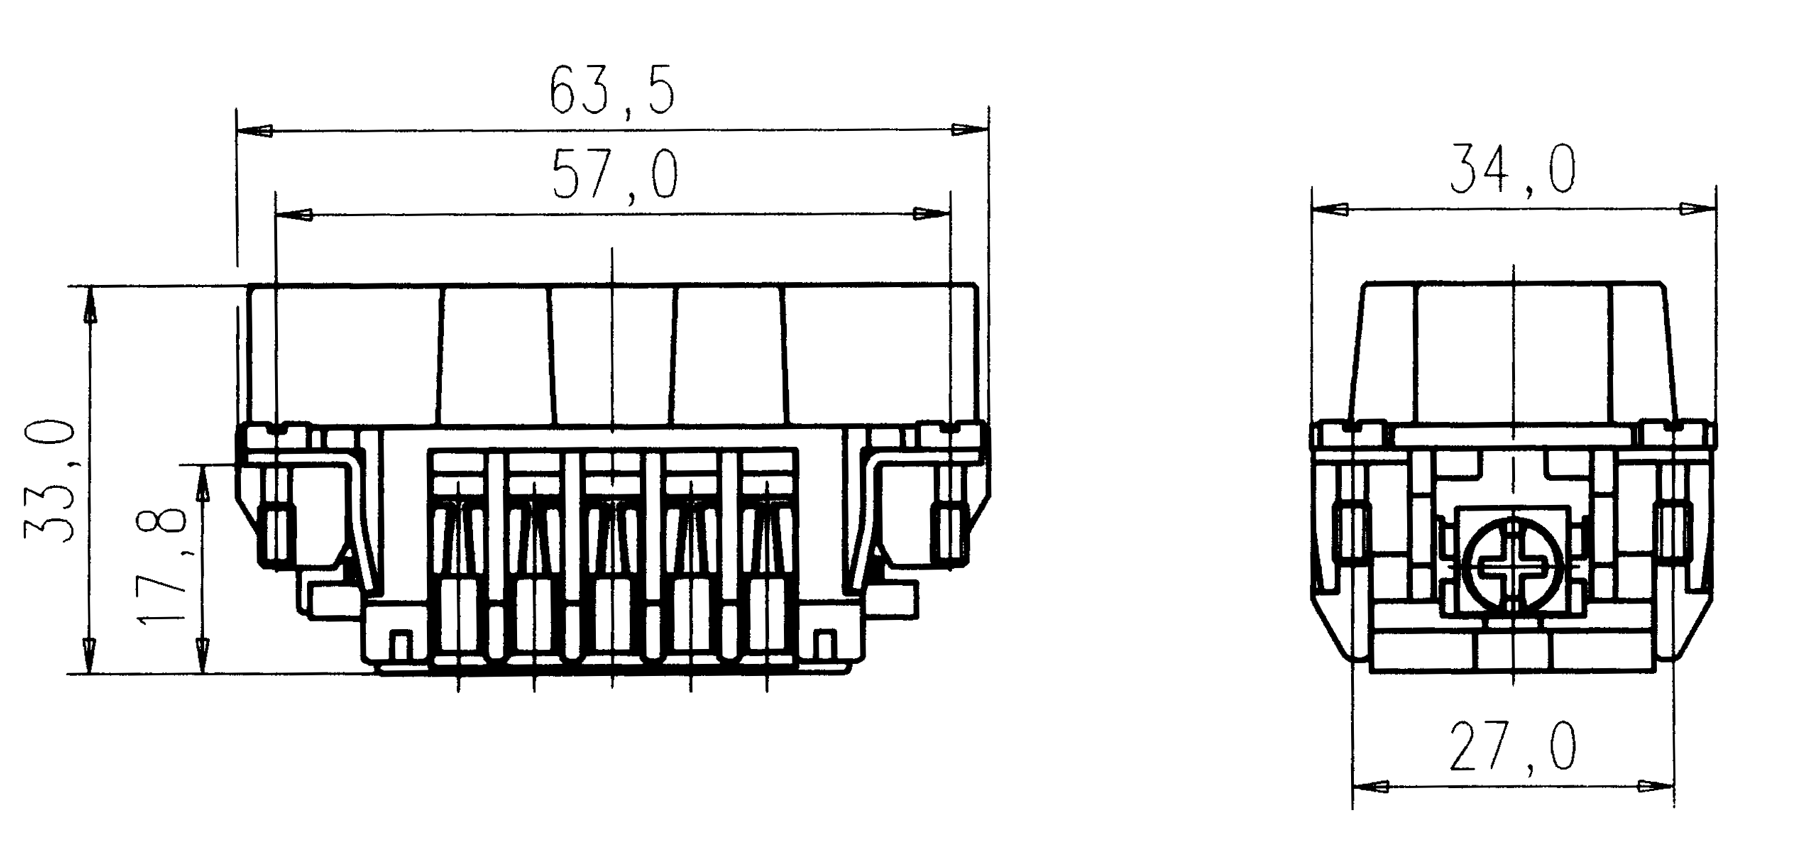 Wiring Diagram For Old Western moreover T4963514 Need remove dash as well Low Profile Strain Relief Cord Connectors 385 750 further TM 55 2835 209 23 156 moreover RepairGuideContent. on electrical wire nut connectors